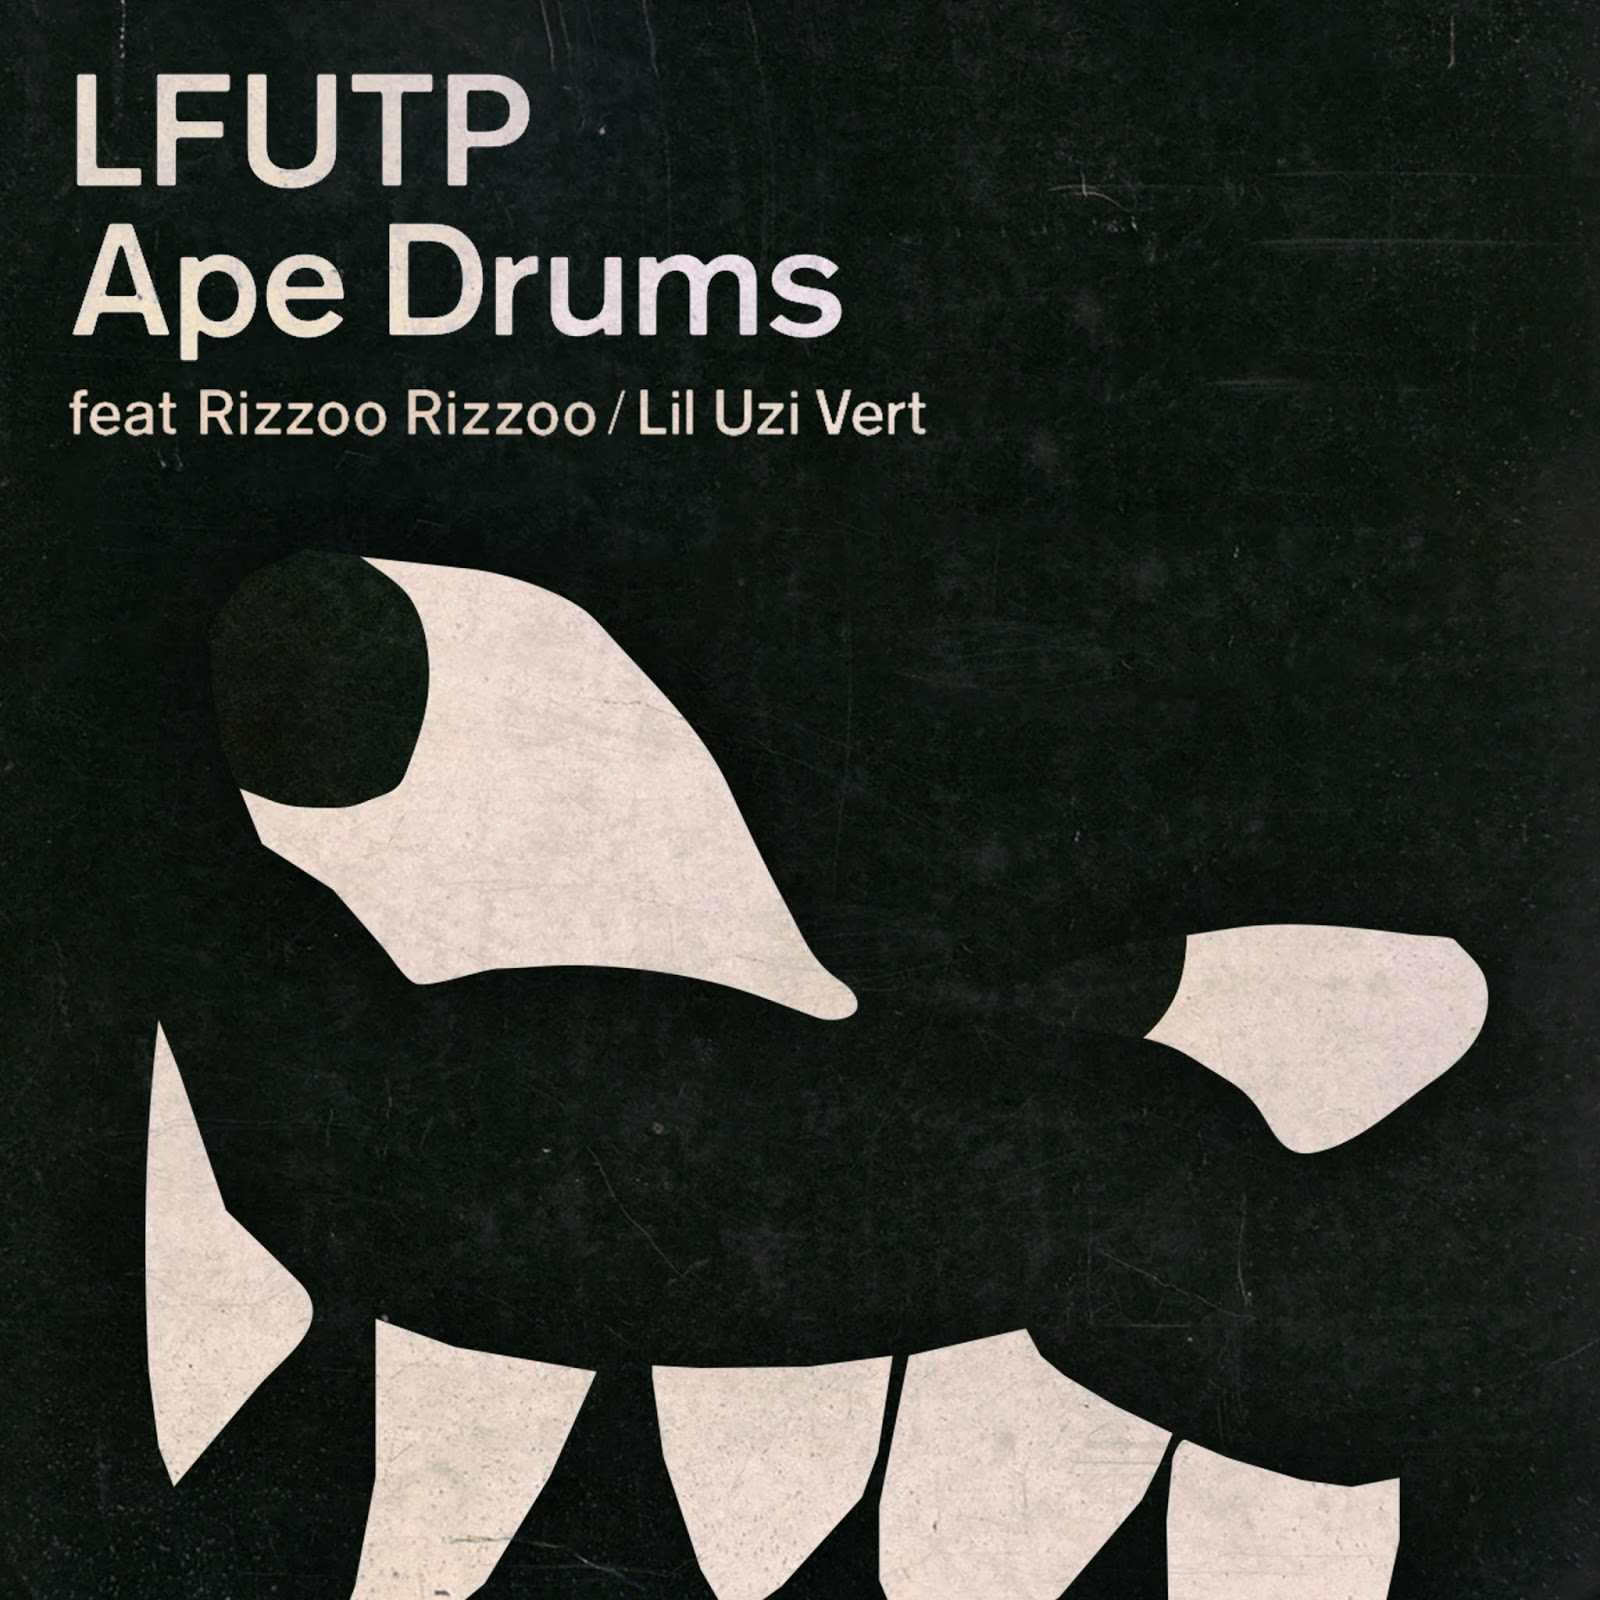 Ape Drums - LFUTP (feat. Rizzoo Rizzoo & Lil Uzi Vert) - Single Cover